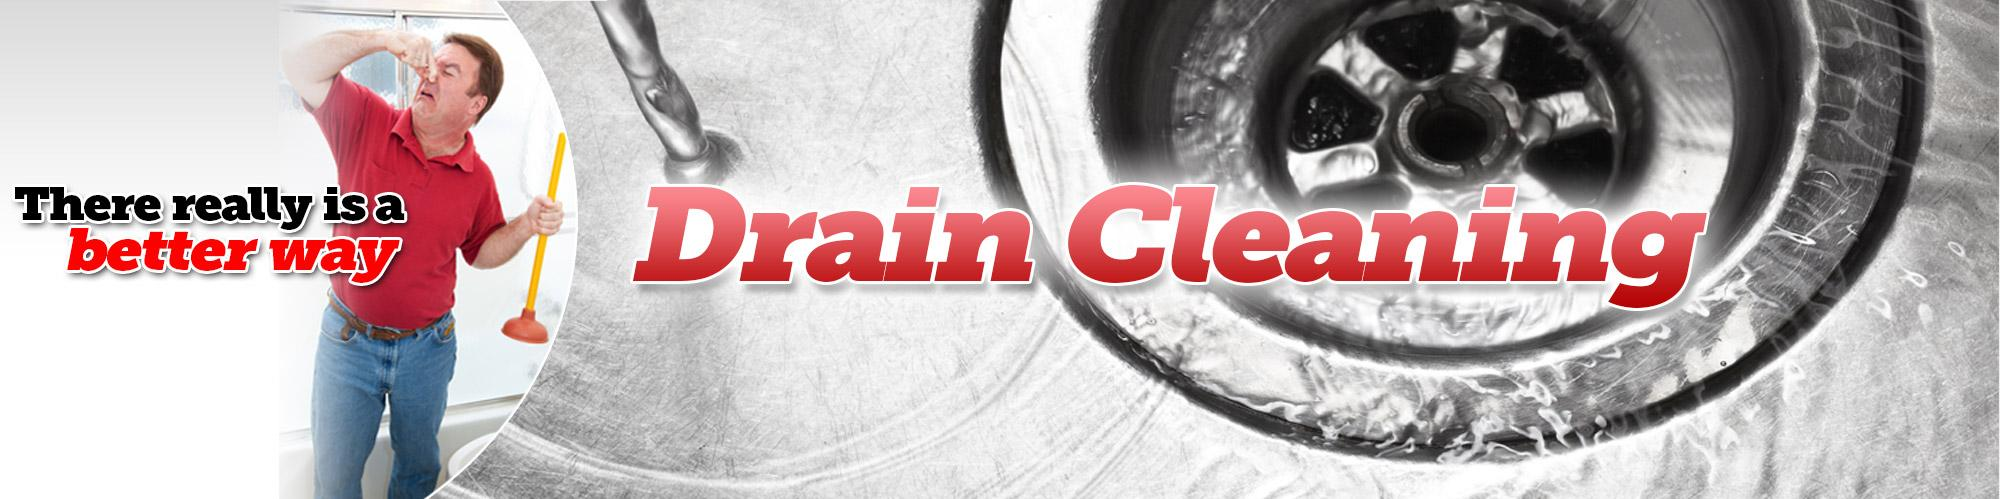 Emergency Drain Cleanings by Budget Rooter in New Castle County, DE